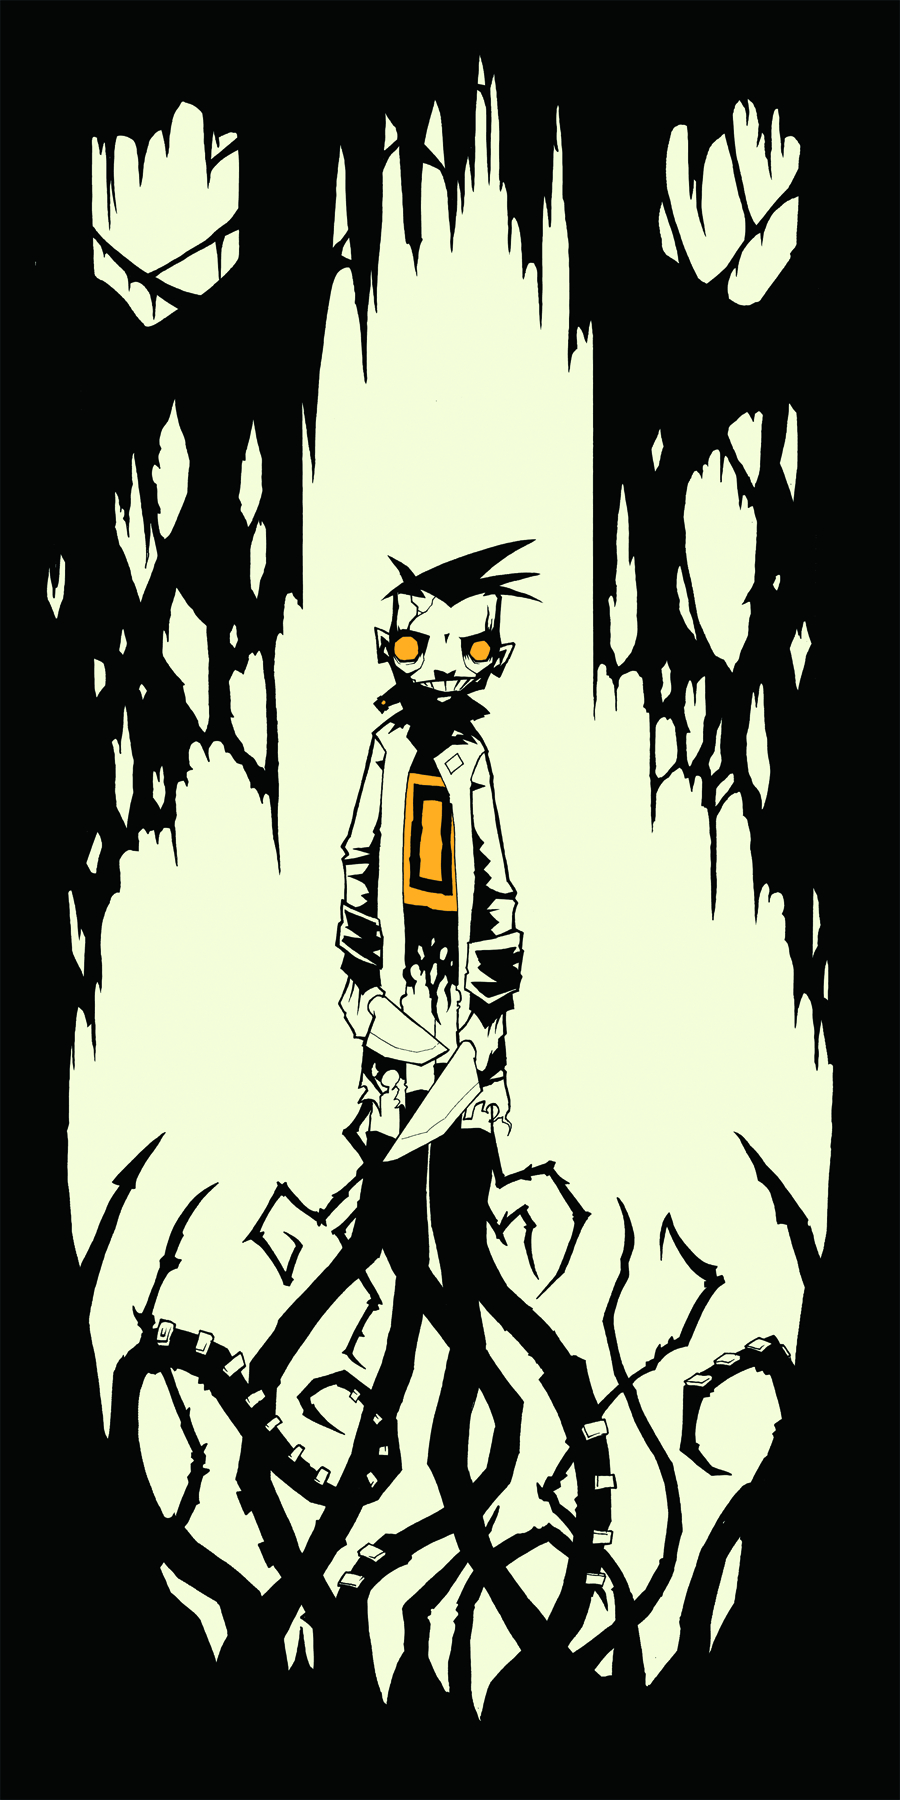 JS NOT J JOHNNY HOMICIDAL MANIAC T/S LG